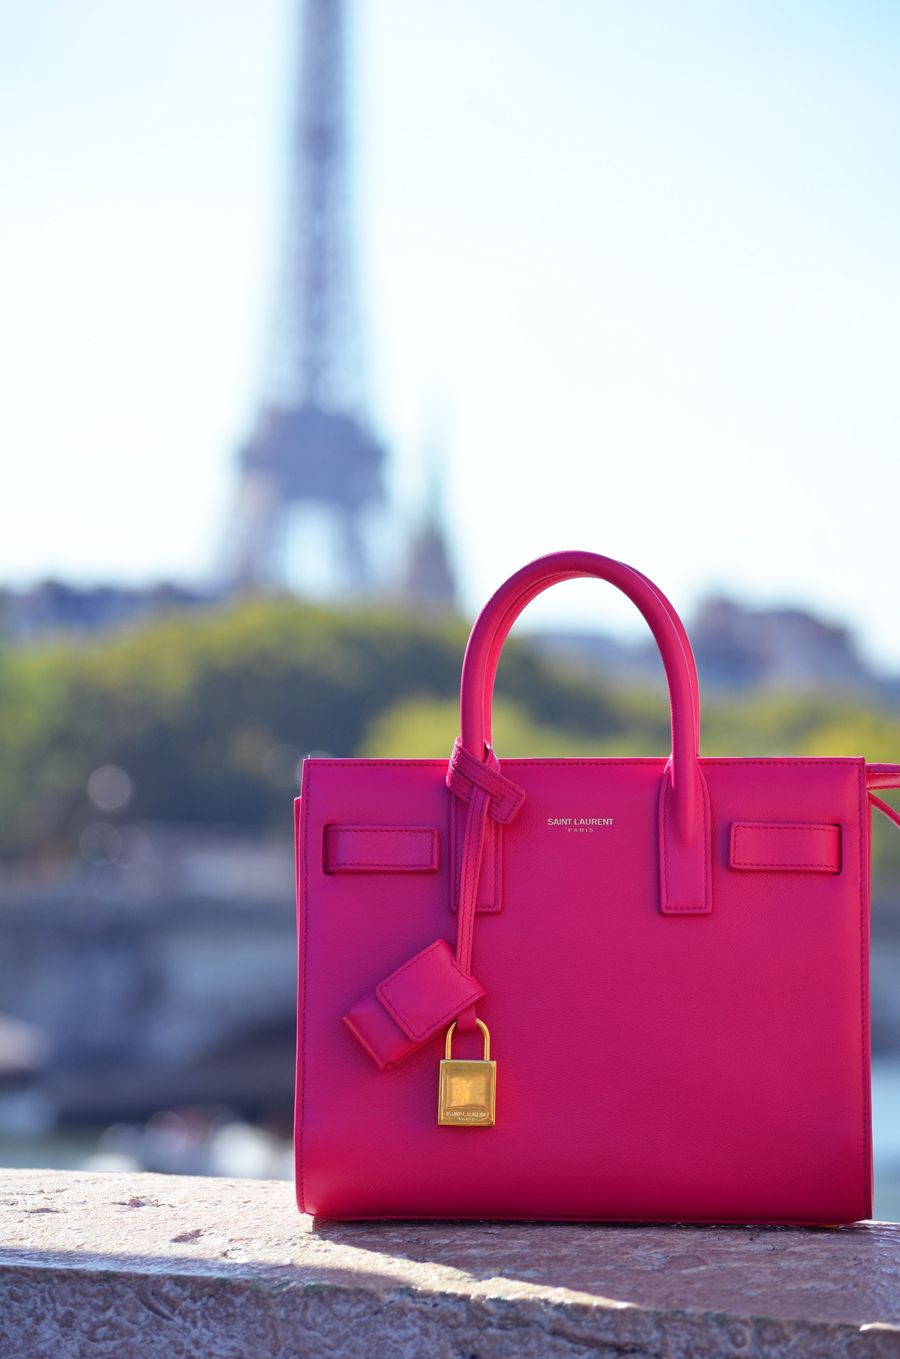 da5617beec Saint Laurent Sac de Jour Micro bag in neon pink!